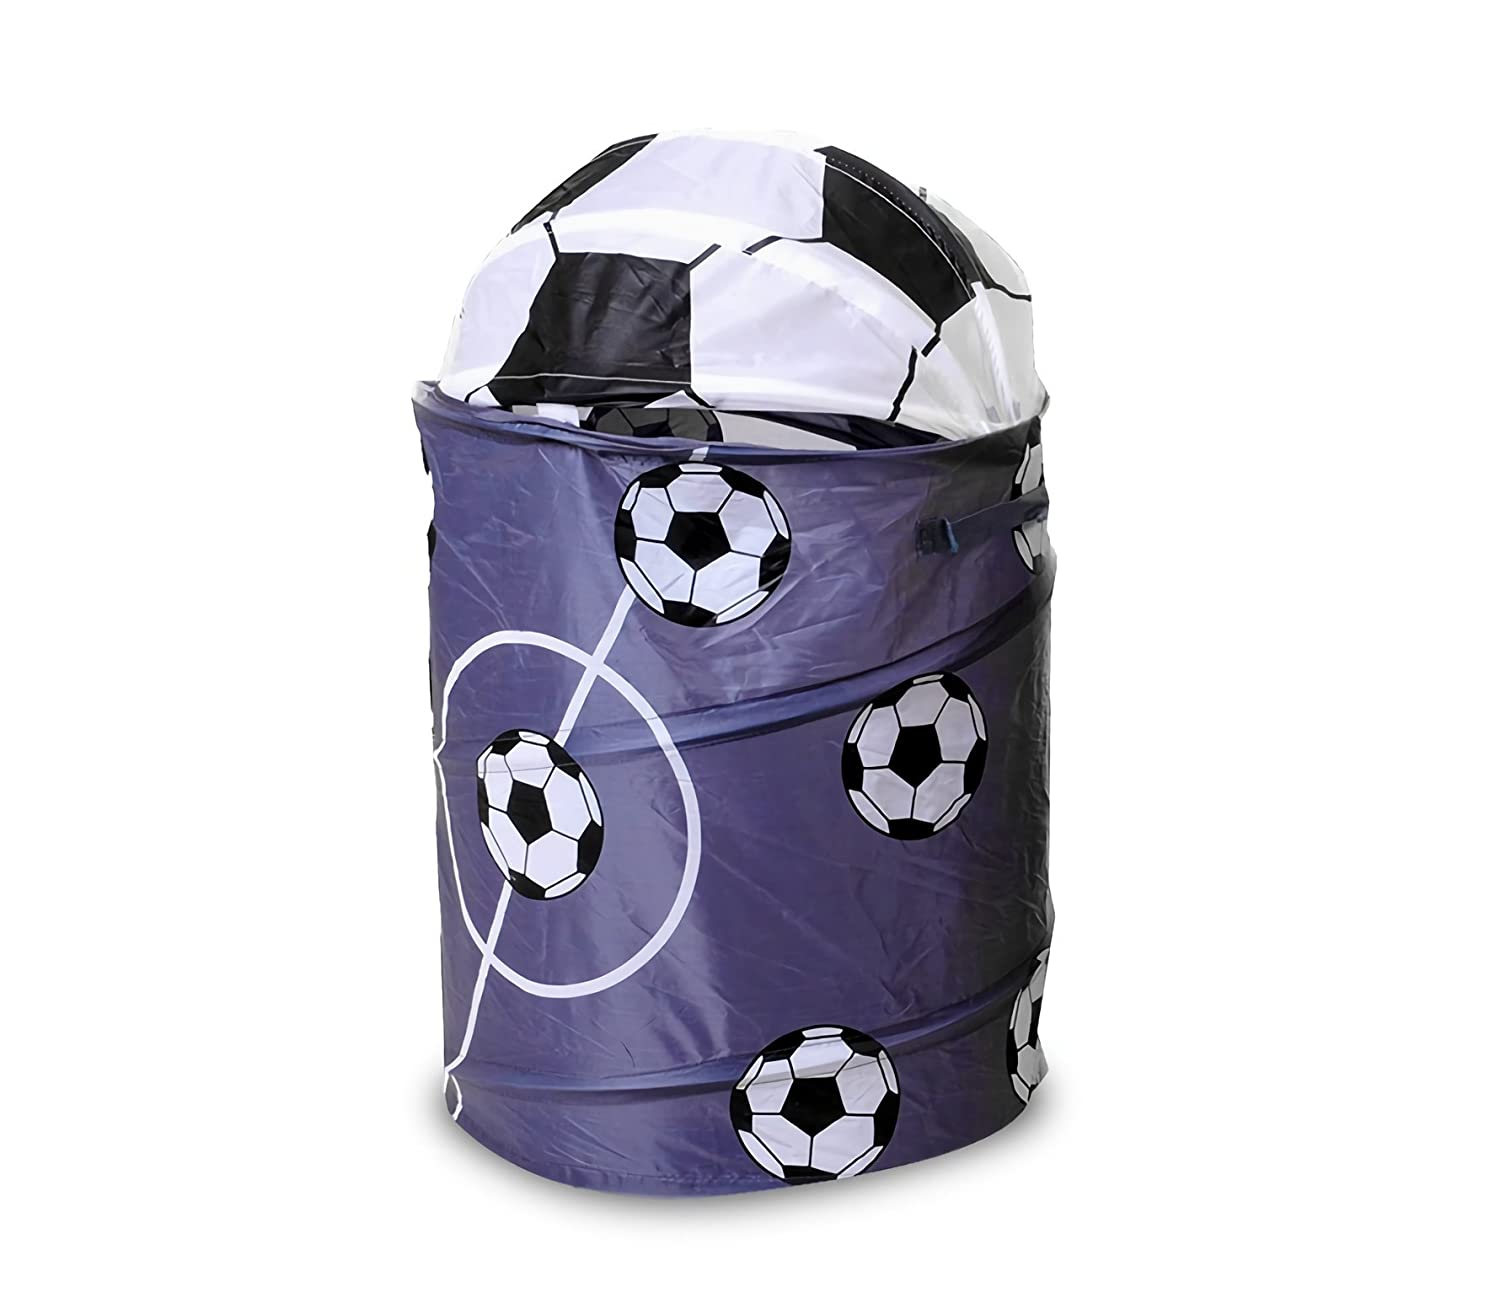 Media Wave Store/® Calcio 748235/Rack Games or collapsible Laundry Basket Metal Frame 63/x 37/cm